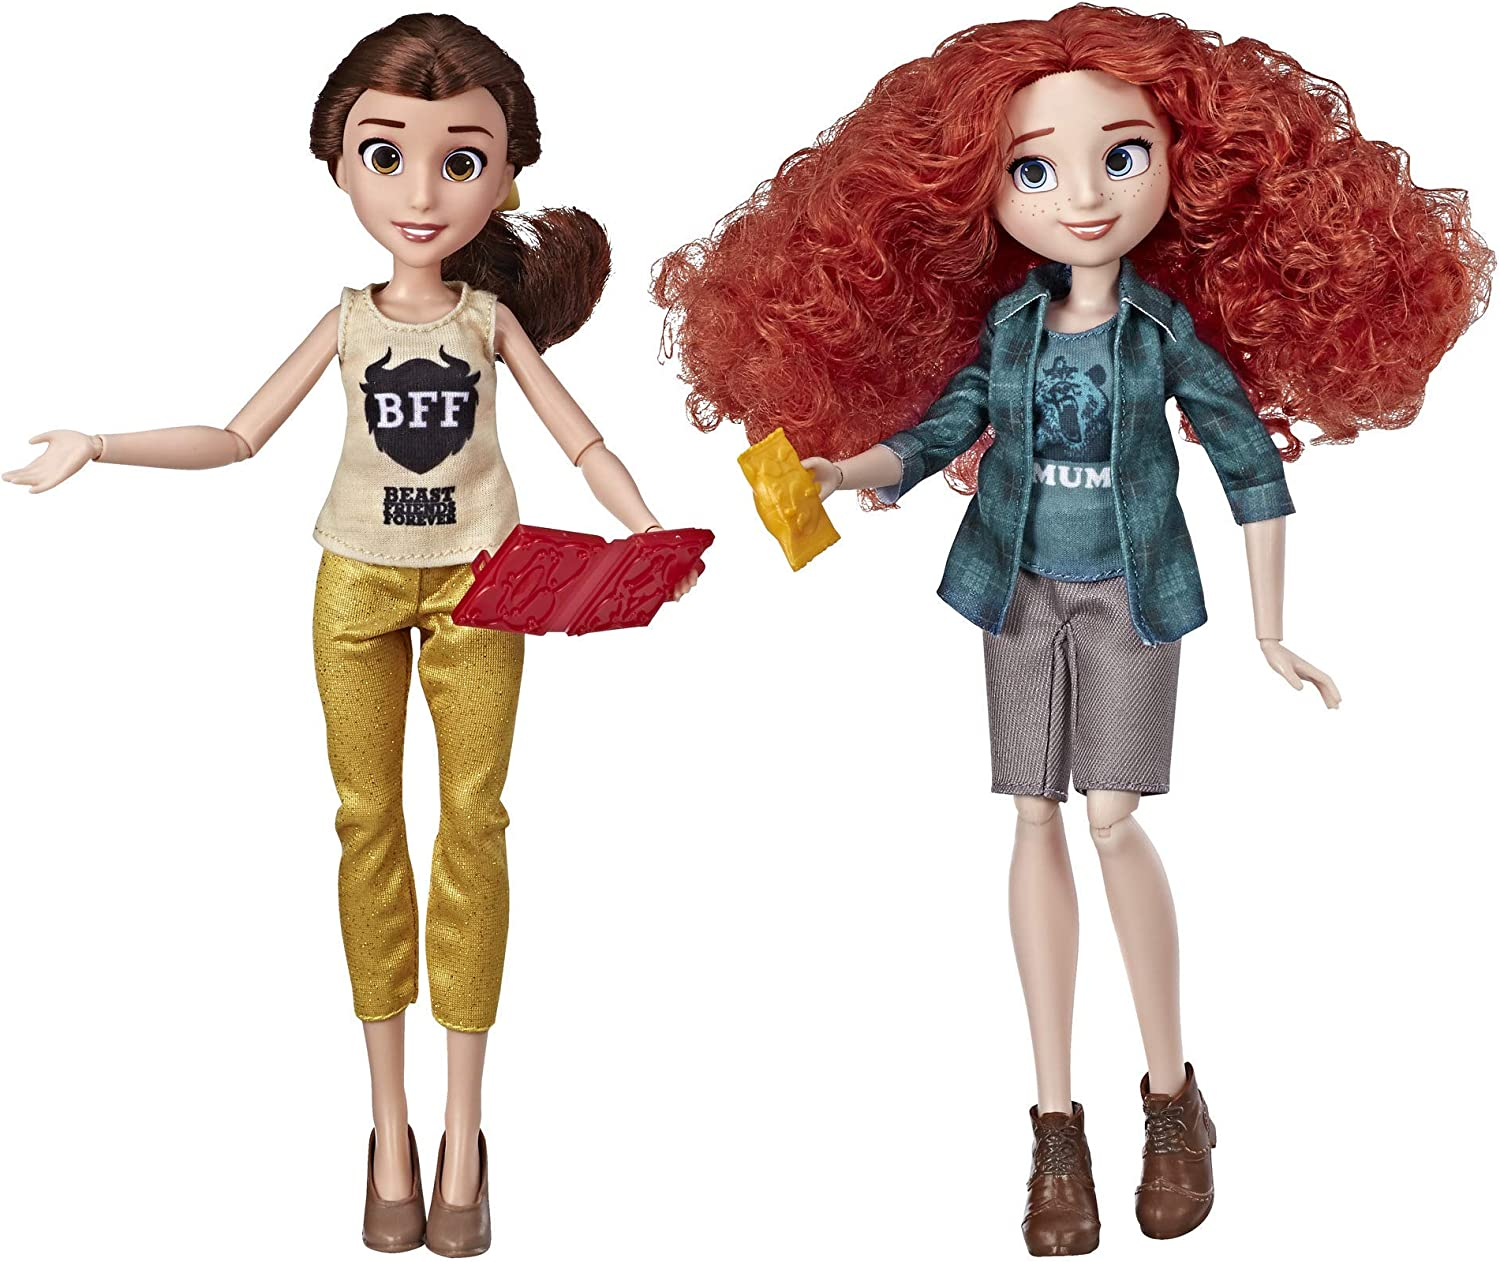 Amazon Com Disney Princess Ralph Breaks The Internet Movie Dolls Belle And Merida Dolls With Comfy Clothes And Accessories Toys Games